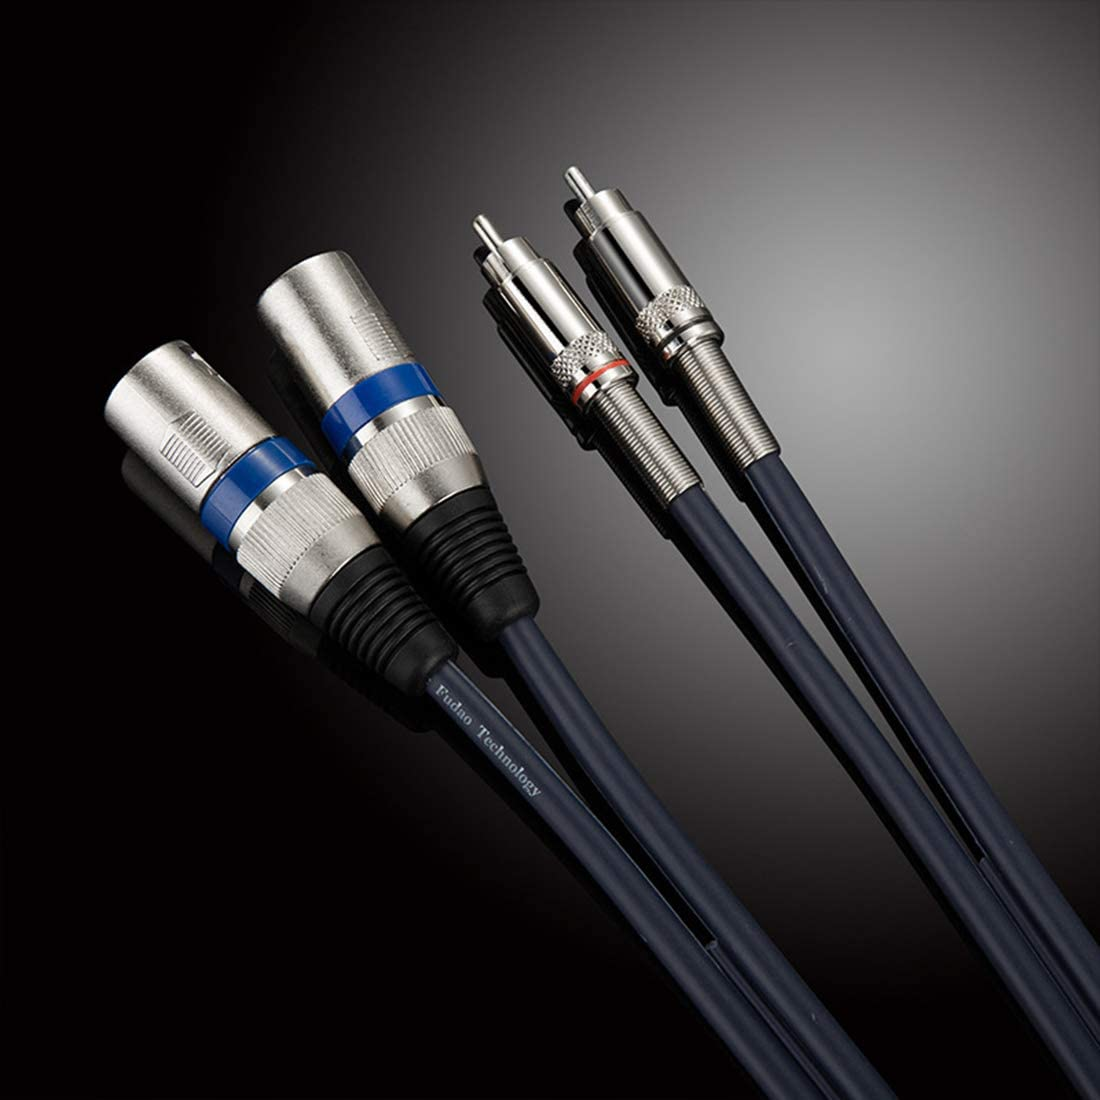 Dual Male XLR to RCA Male Cable 1M//3FT 2 XLR to 2 RCA//Phono Plug HIFI Audio Cable Stereo Audio Cable Connector Mixer Microphone Cable Wire Cord